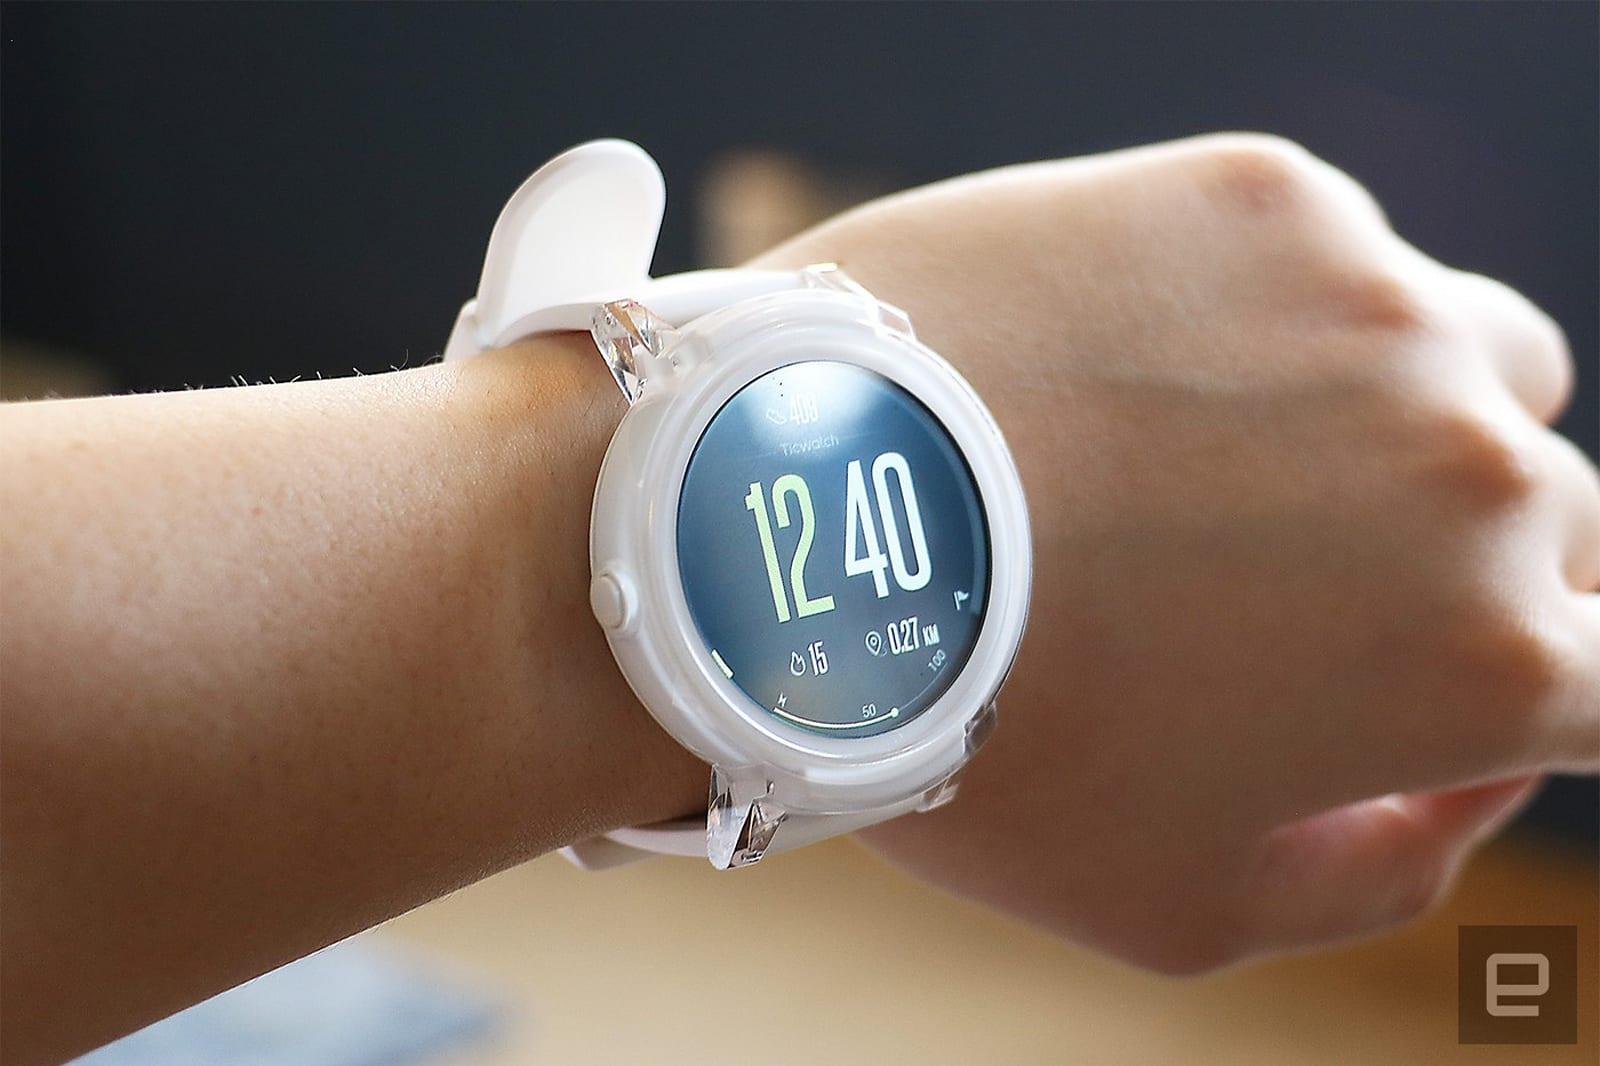 tech coming is gizmodo hyt to devices cz watch based liquid more watches